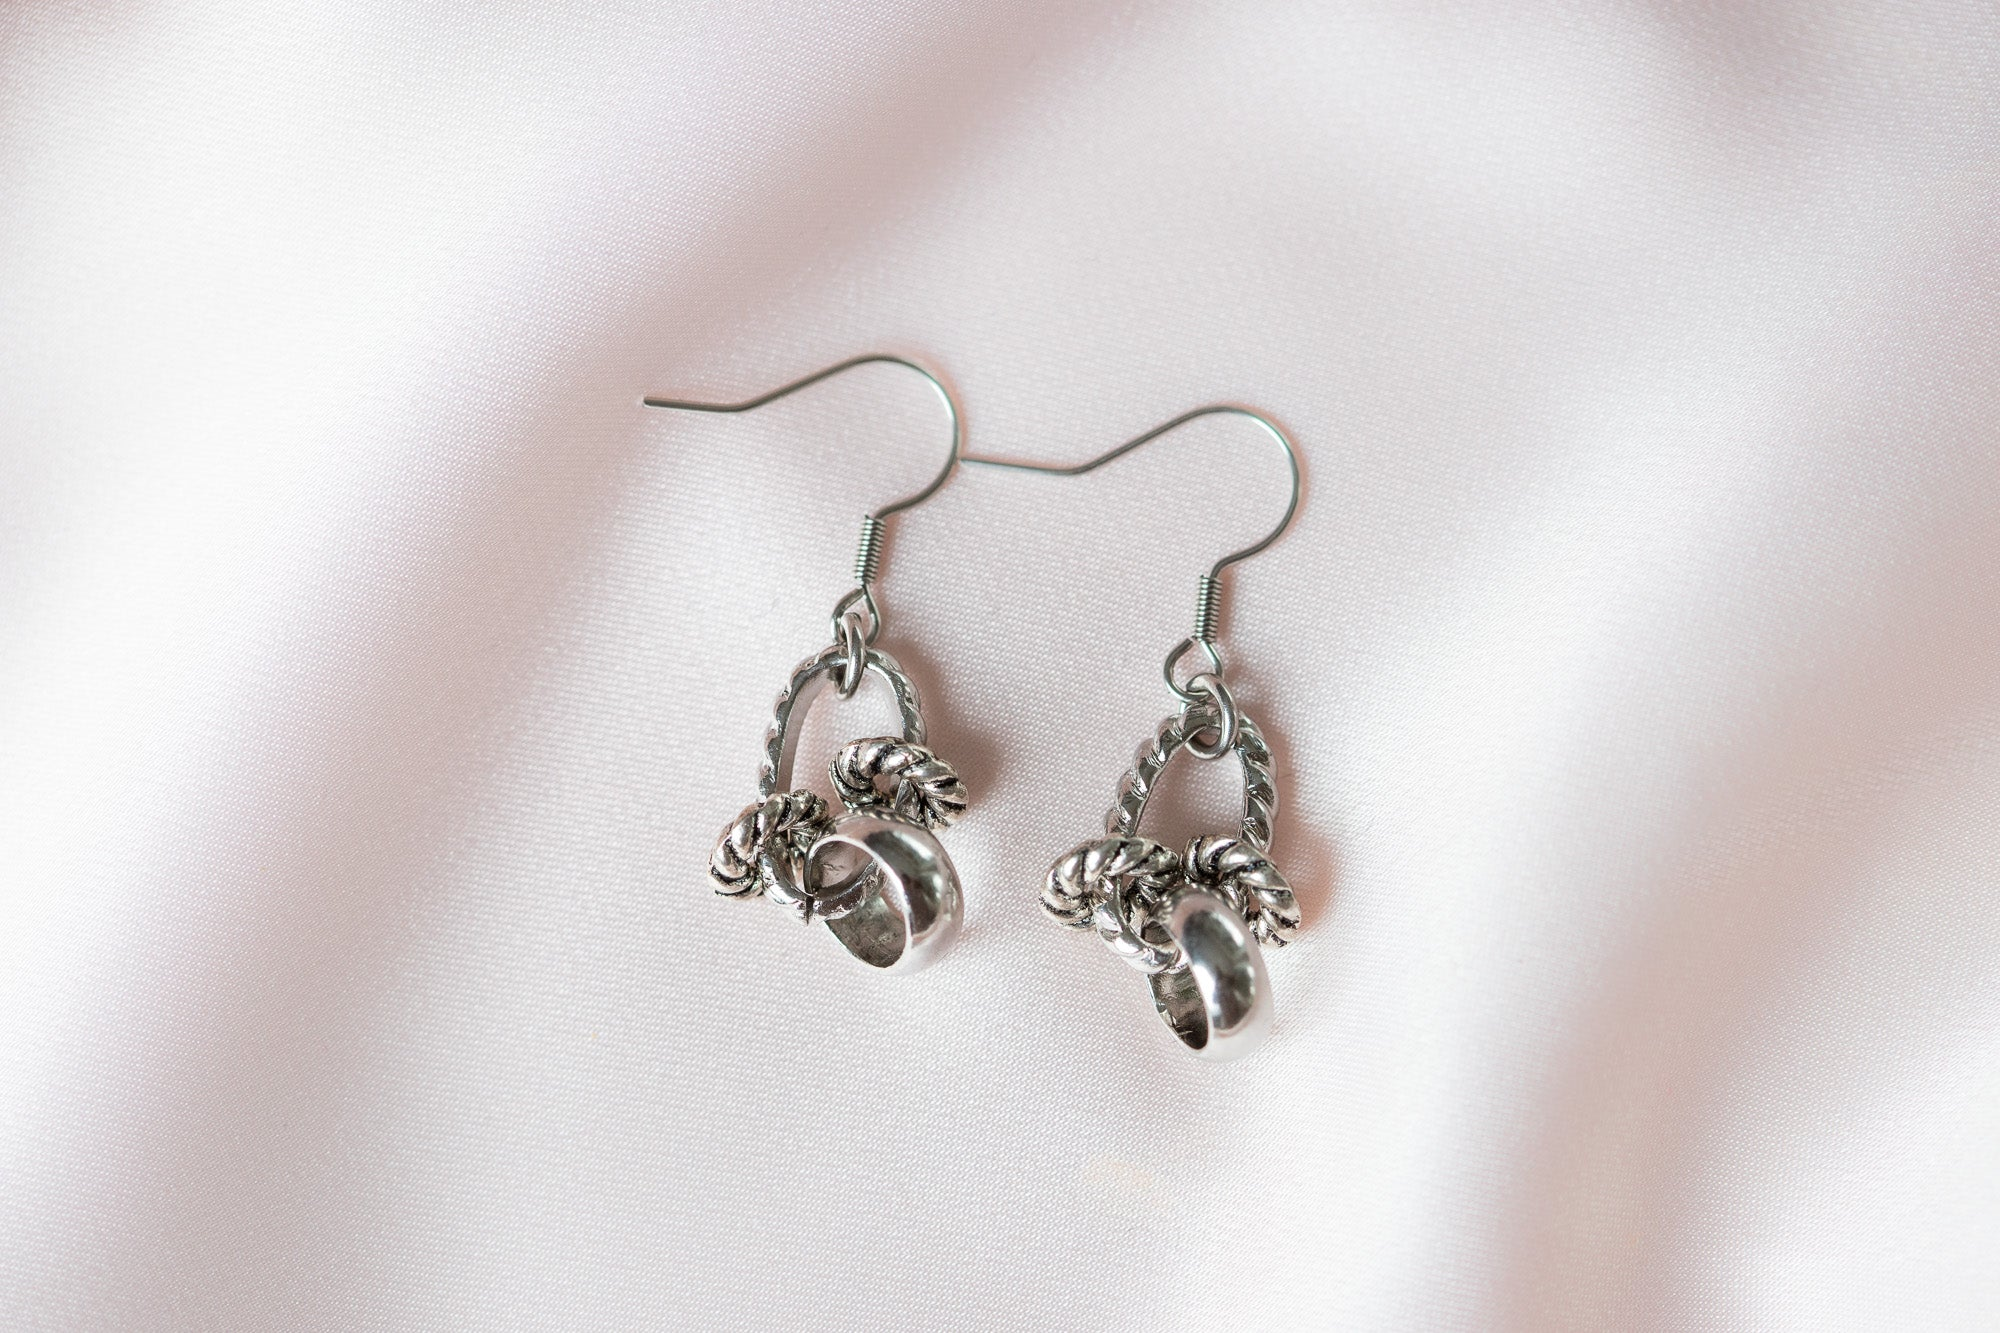 Carolily Finery earrings made from stainless steel